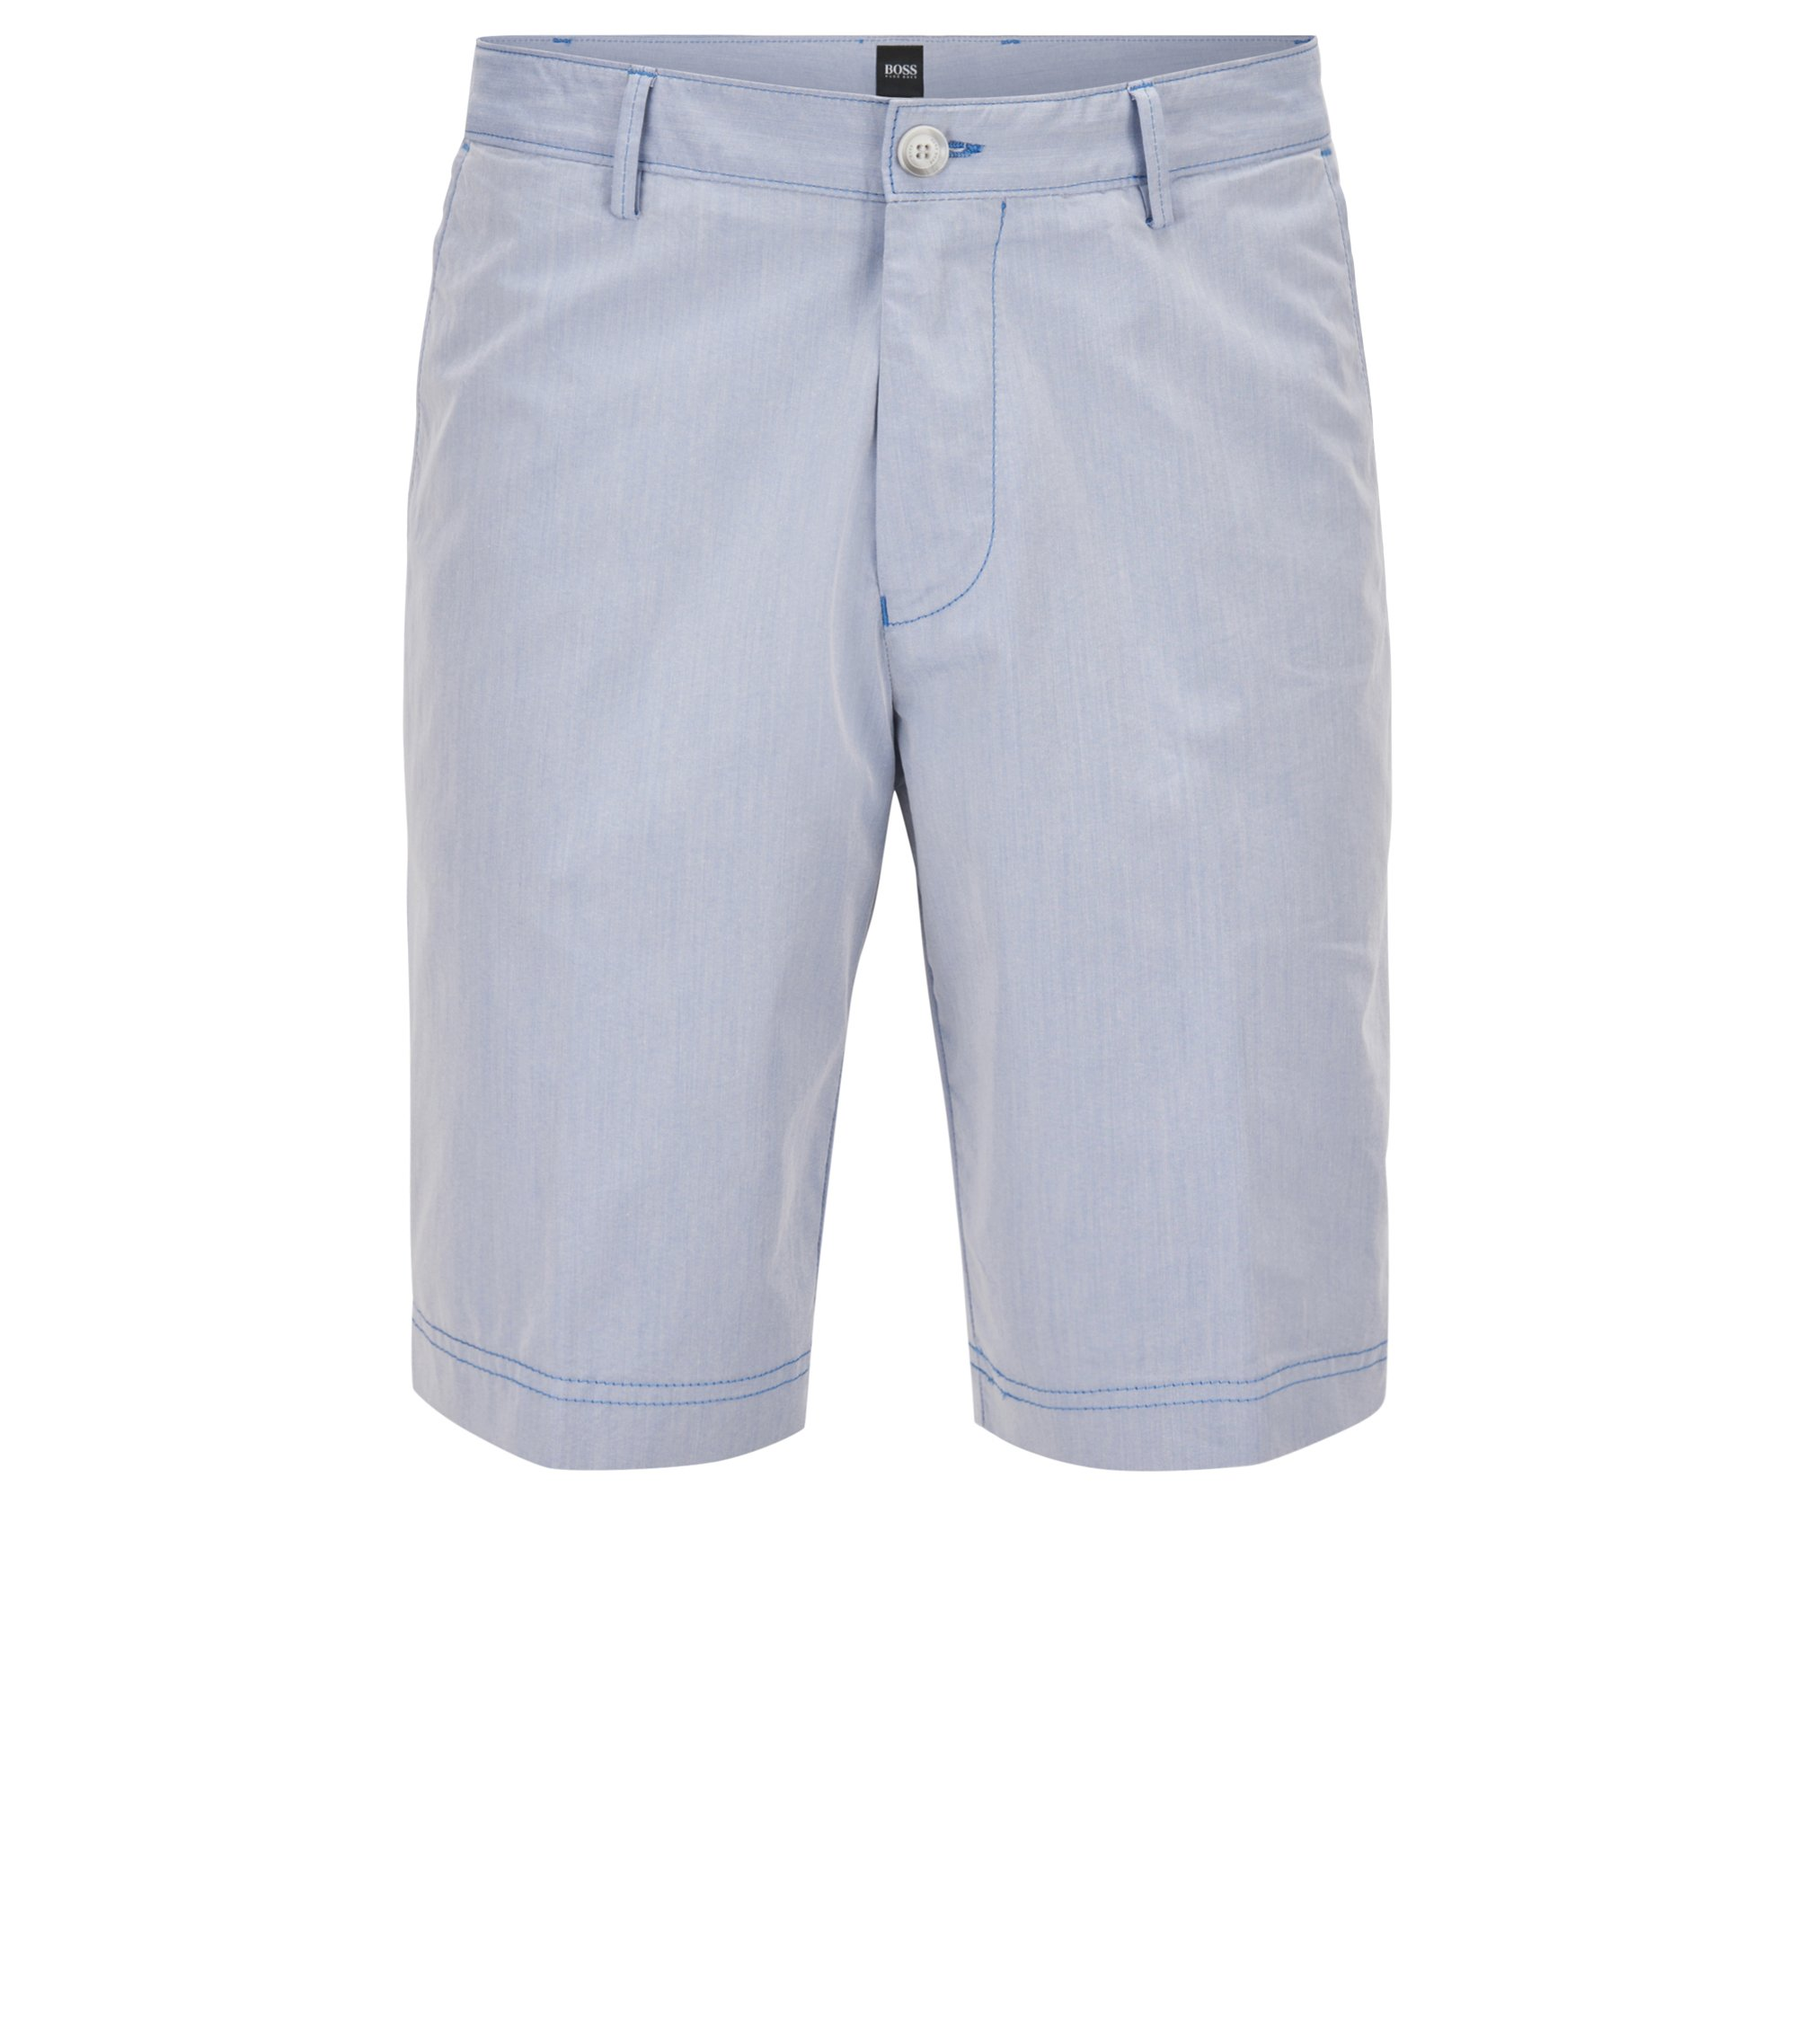 Short Regular Fit en coton italien mélangé, Bleu vif